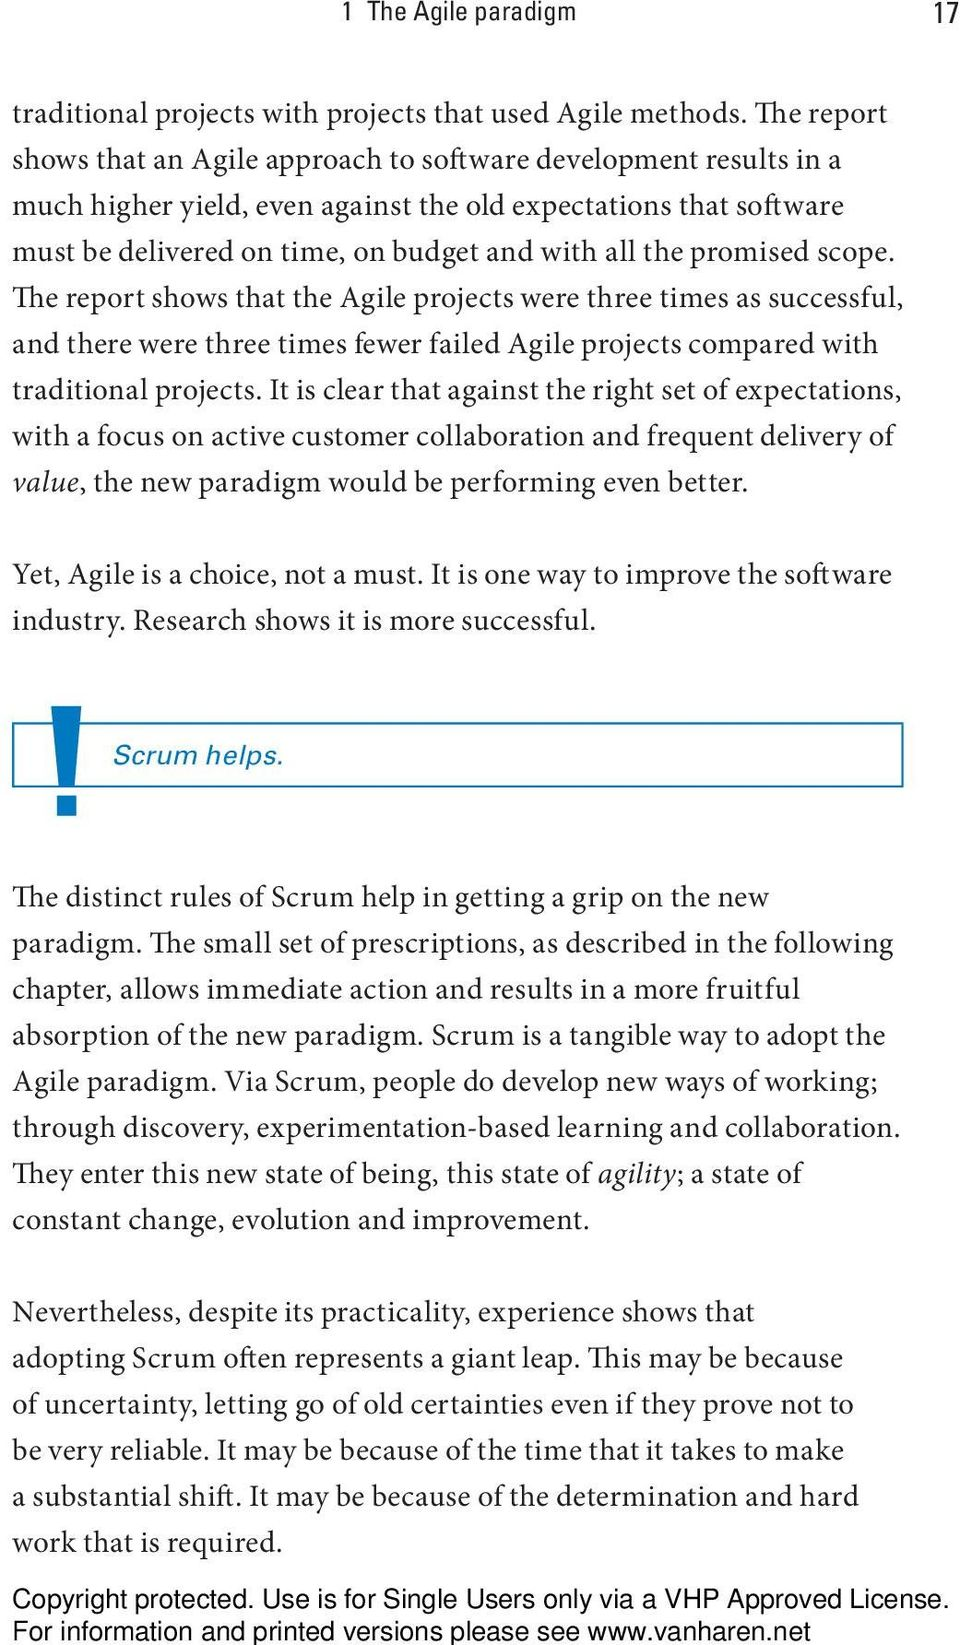 promised scope. The report shows that the Agile projects were three times as successful, and there were three times fewer failed Agile projects compared with traditional projects.